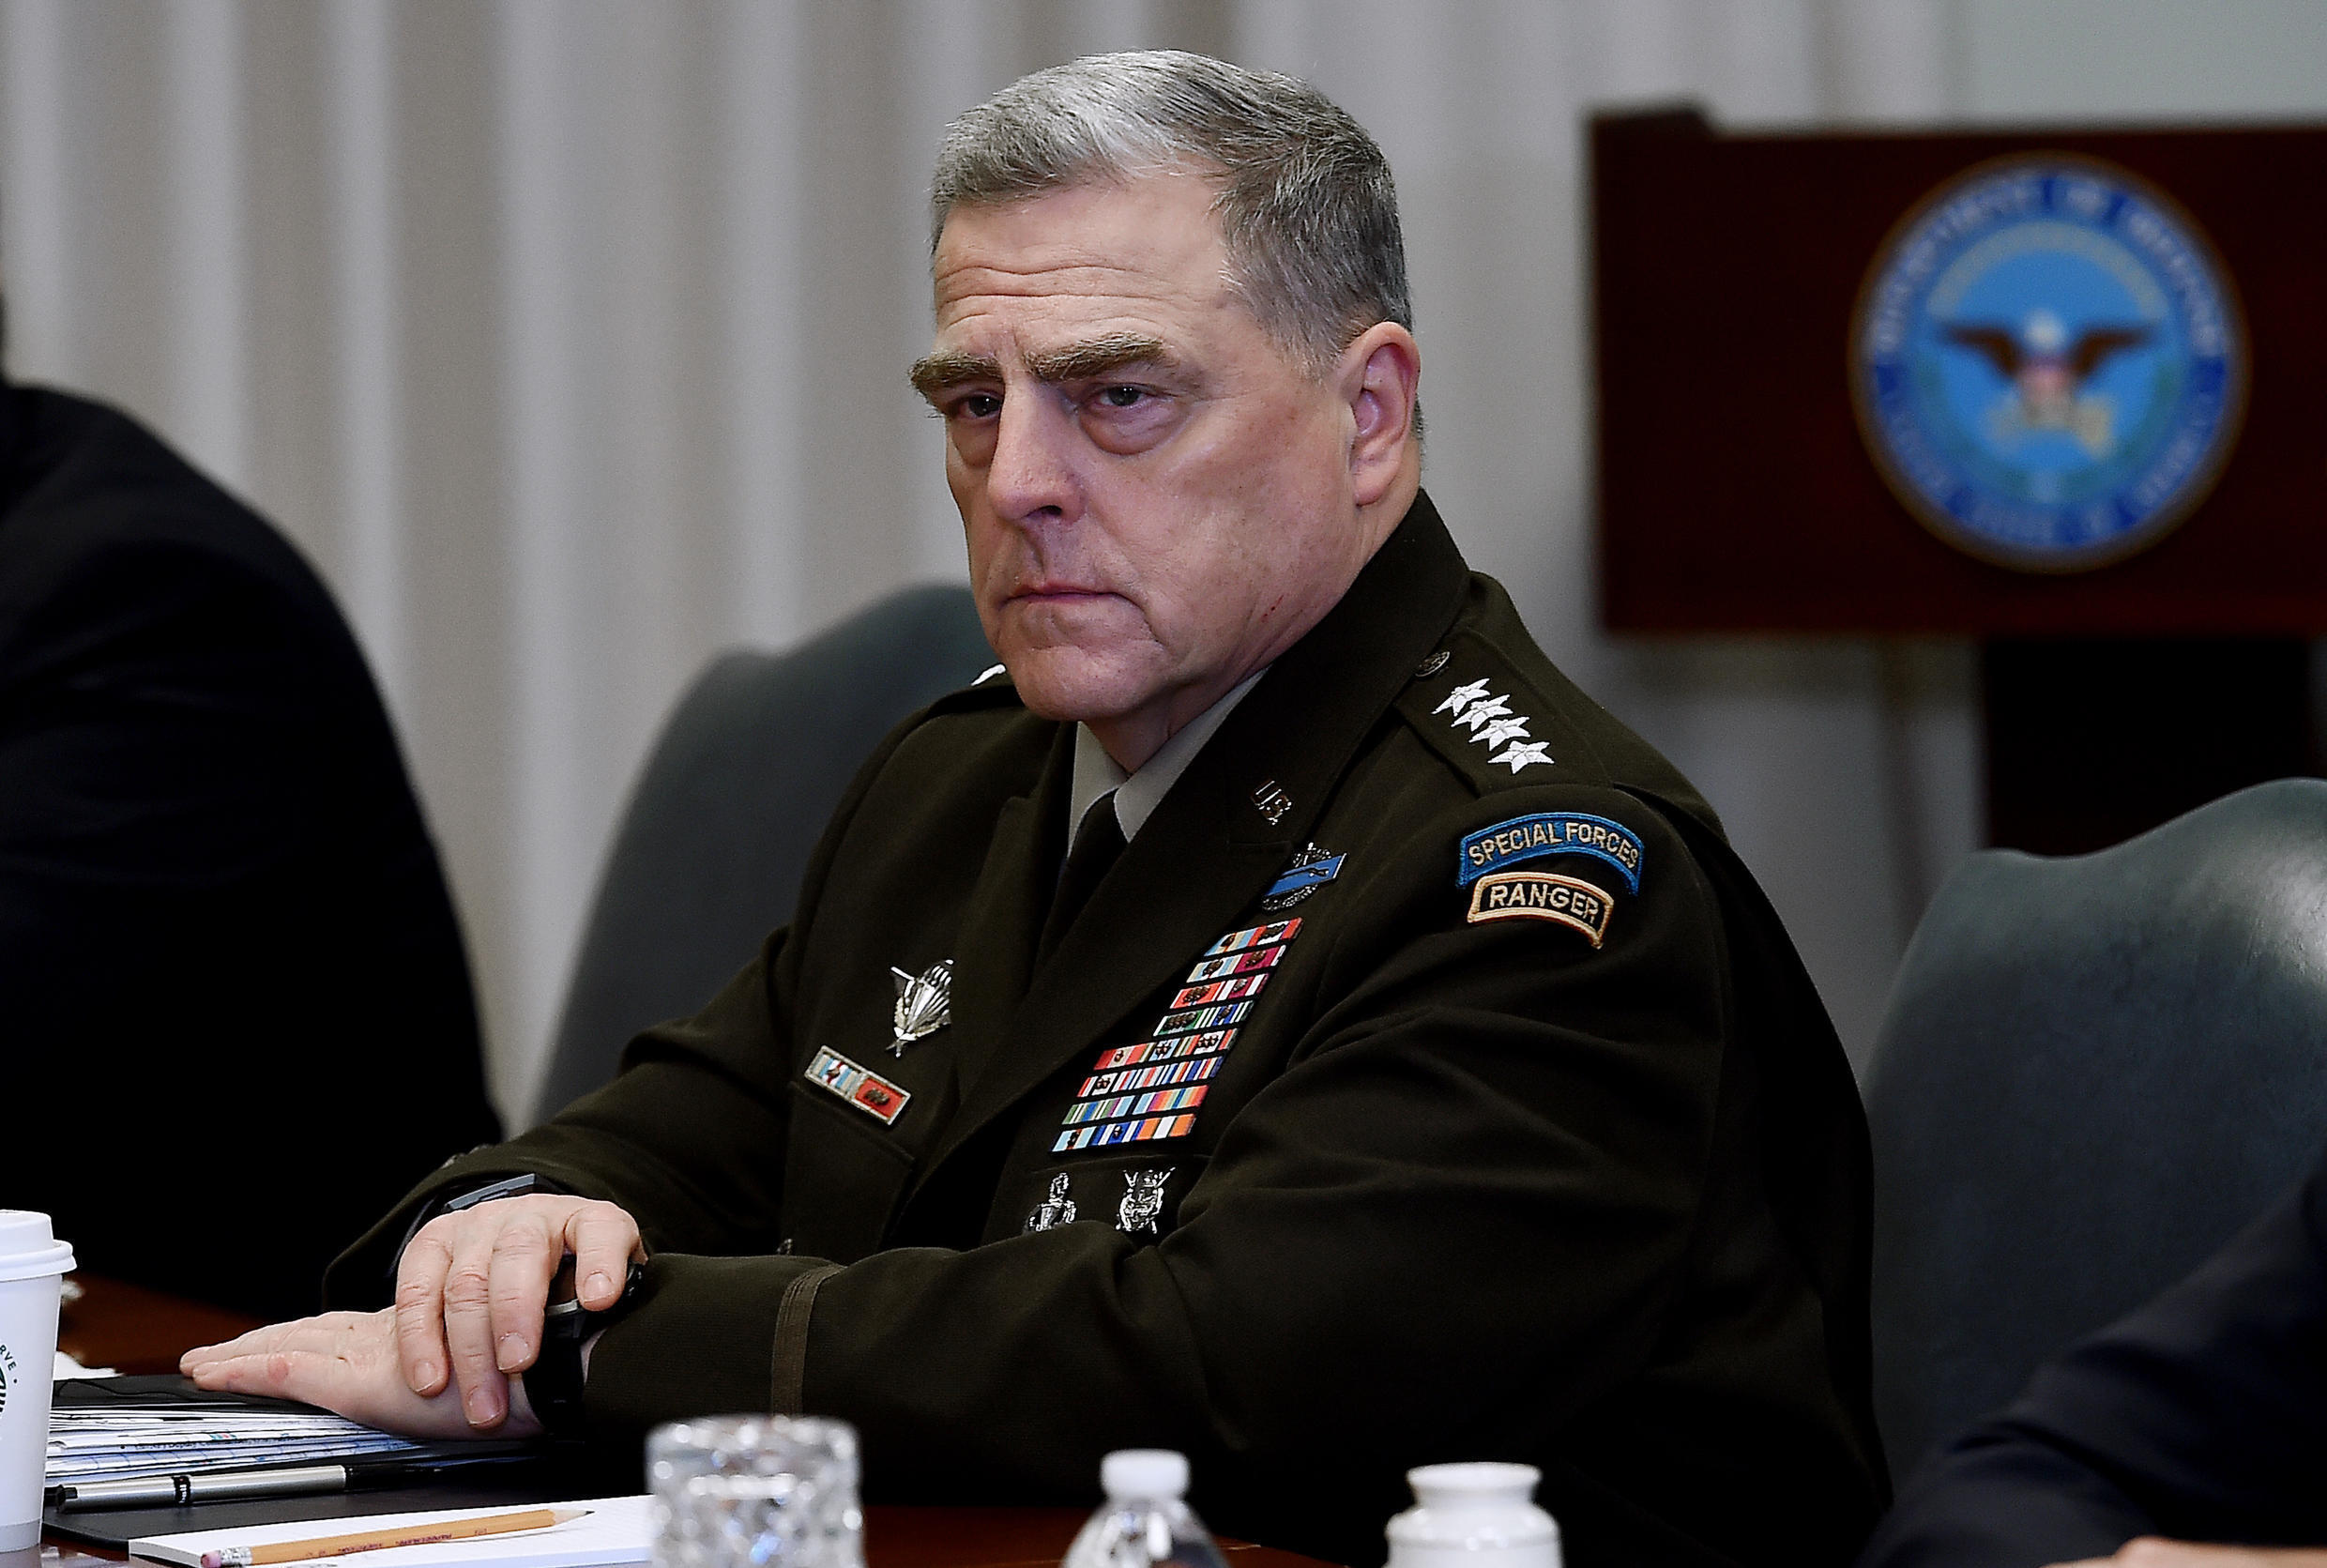 General Mark Milley, chairman of the US Joint Chiefs of Staff, is among several senior US military officers self-quarantining